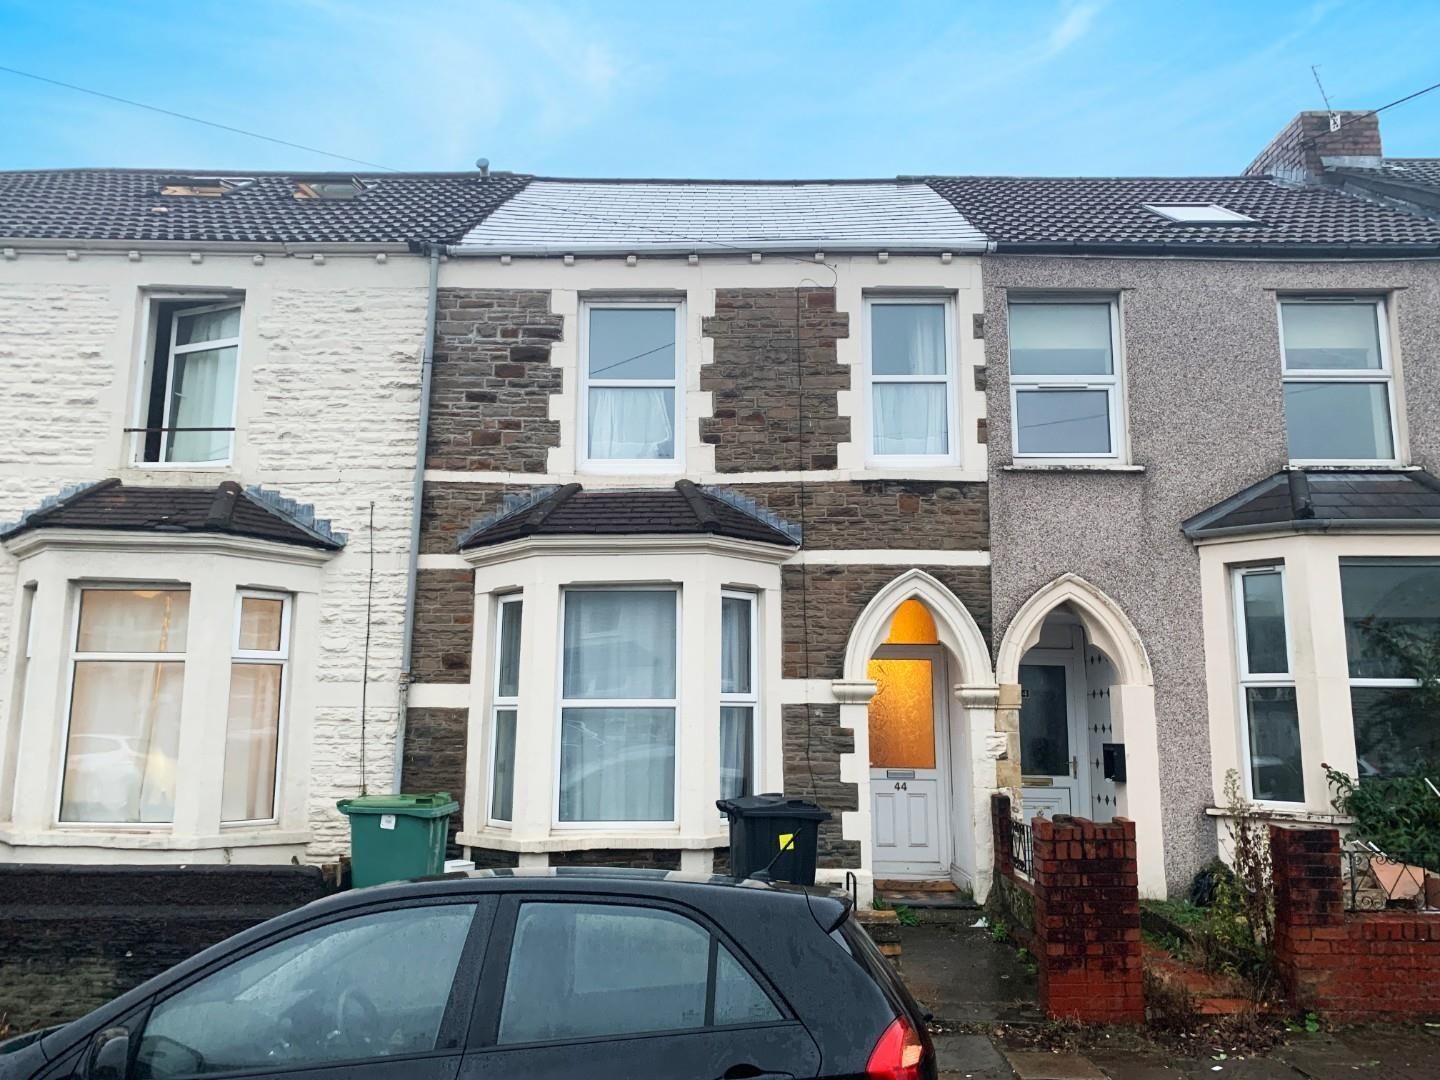 5 bed terraced house for sale in Llantrisant Street, Cardiff, CF24